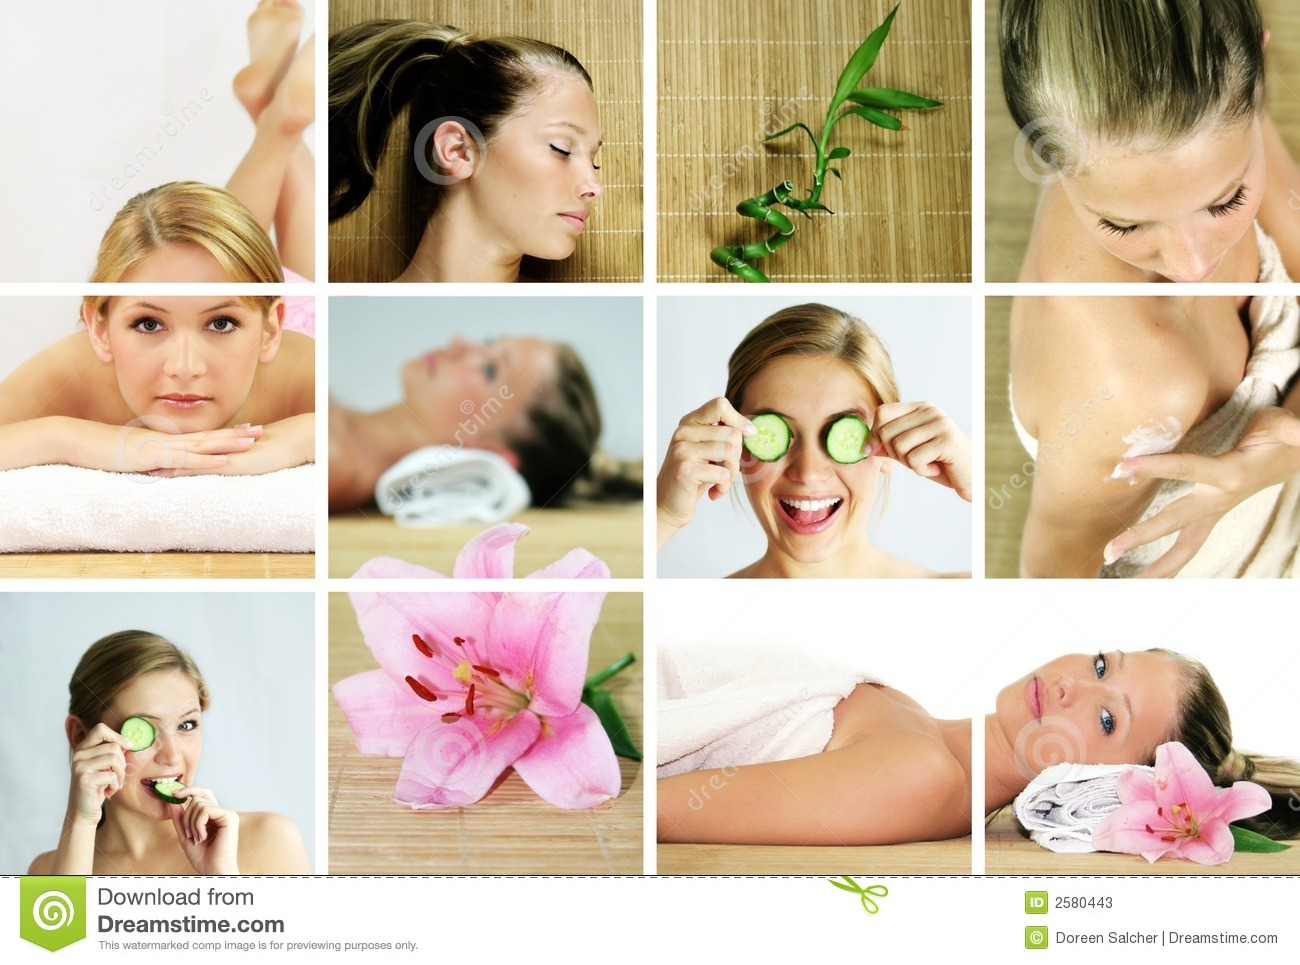 wellness spa gratis porr videos